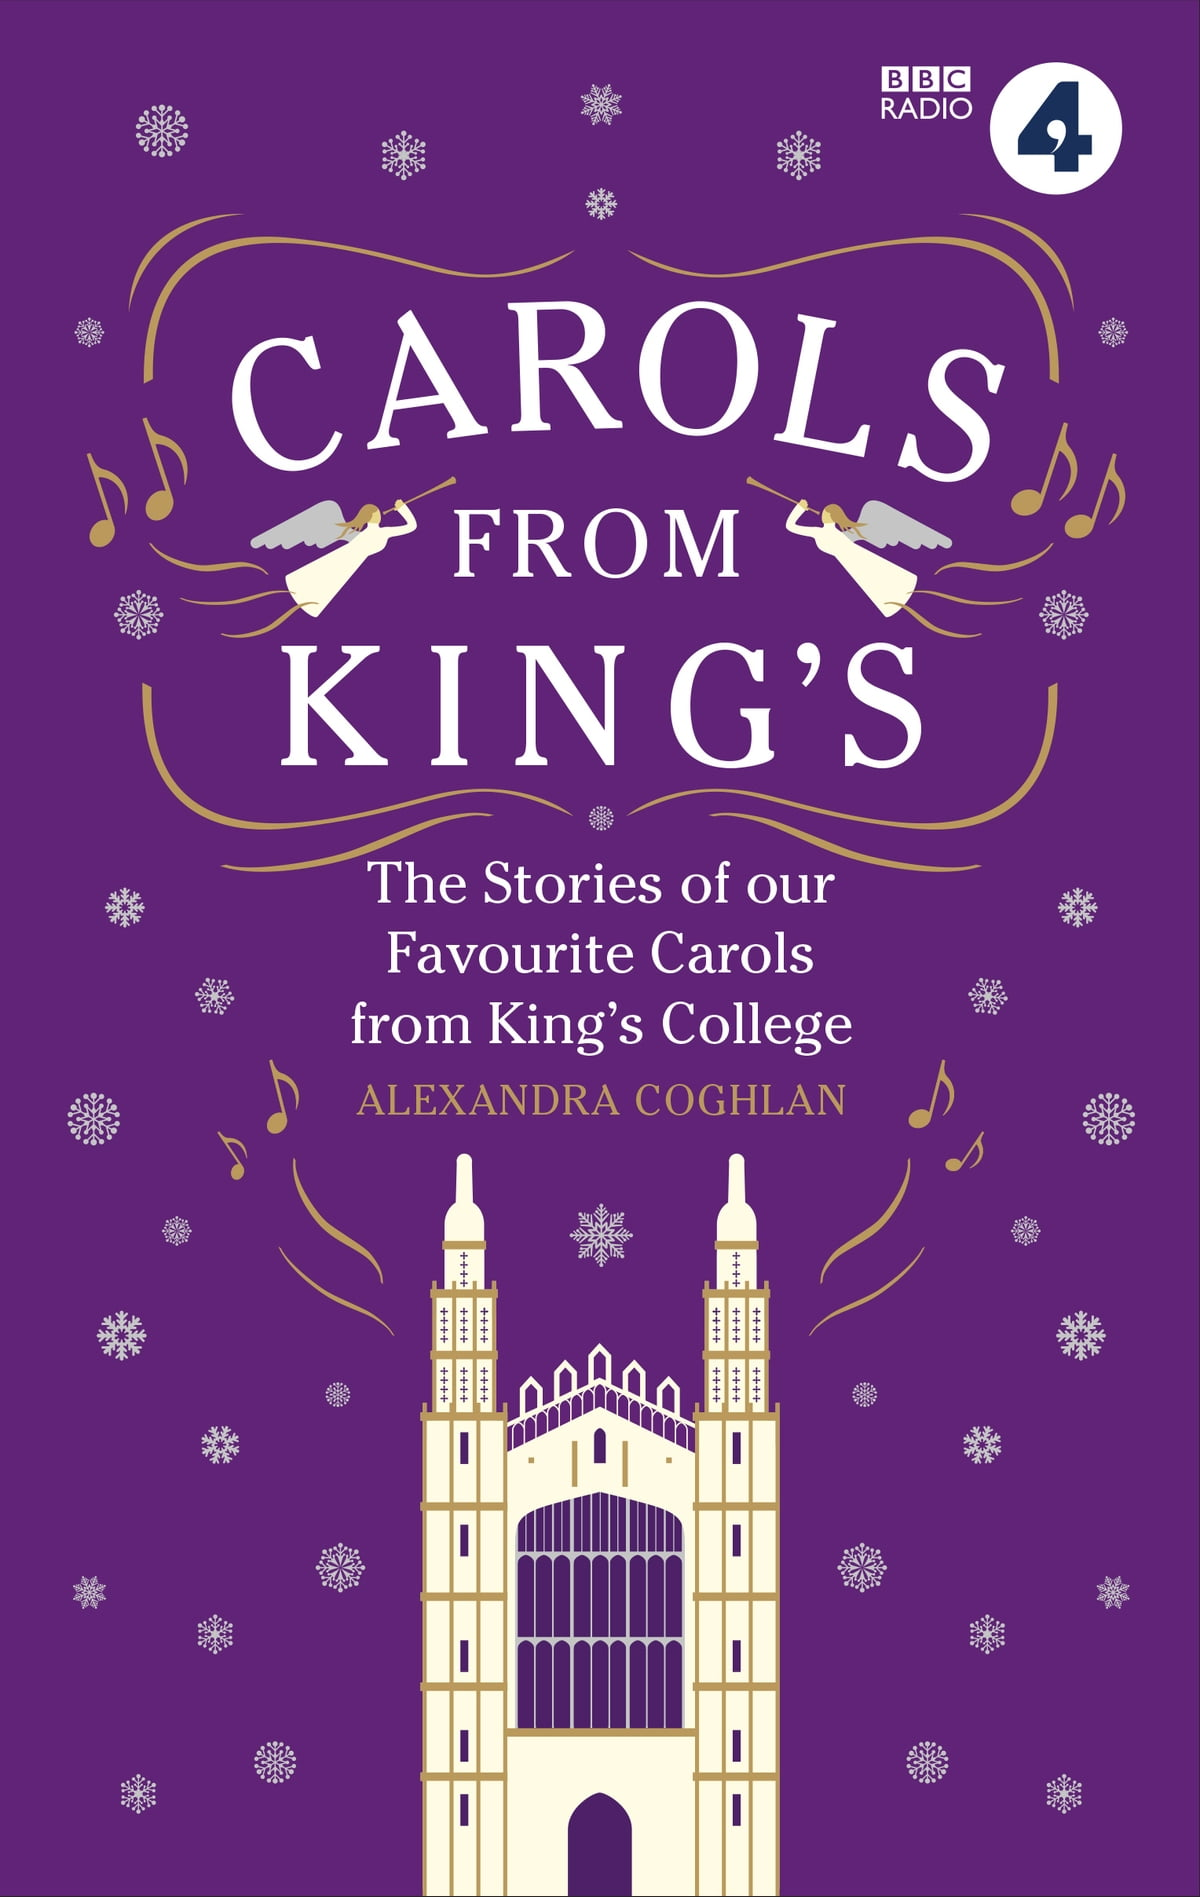 kings college favourite carols - 668×1100